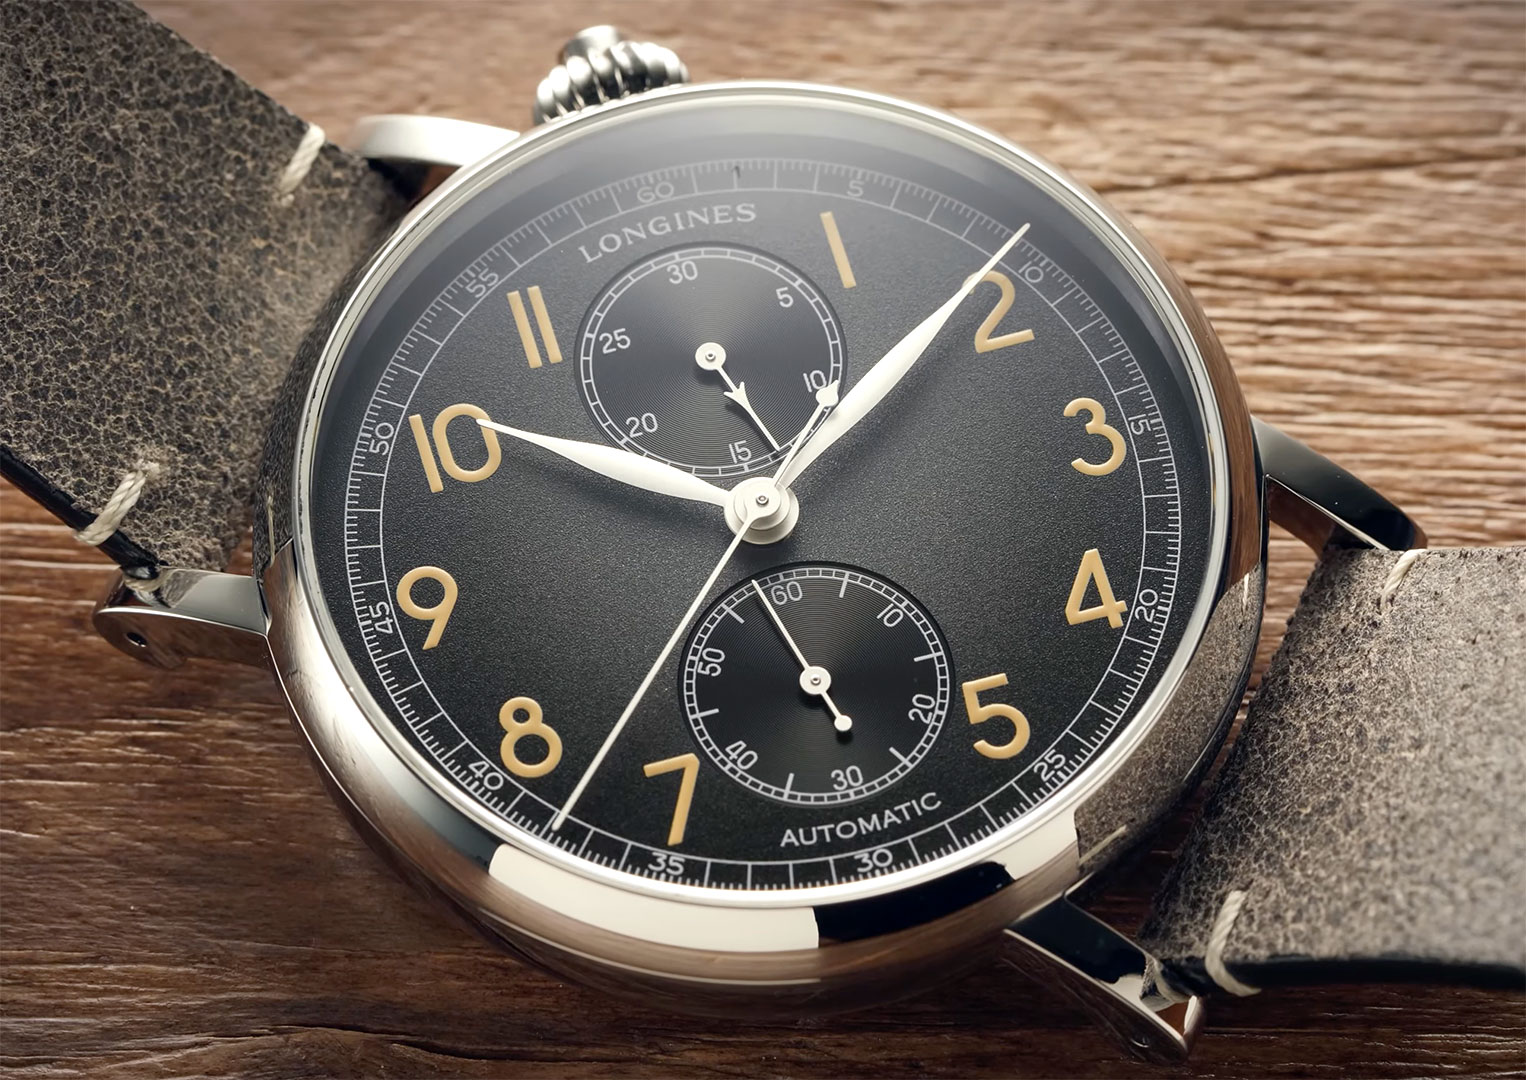 Longines was founded by Auguste Agassiz in 1832, St-Imier, Switzerland